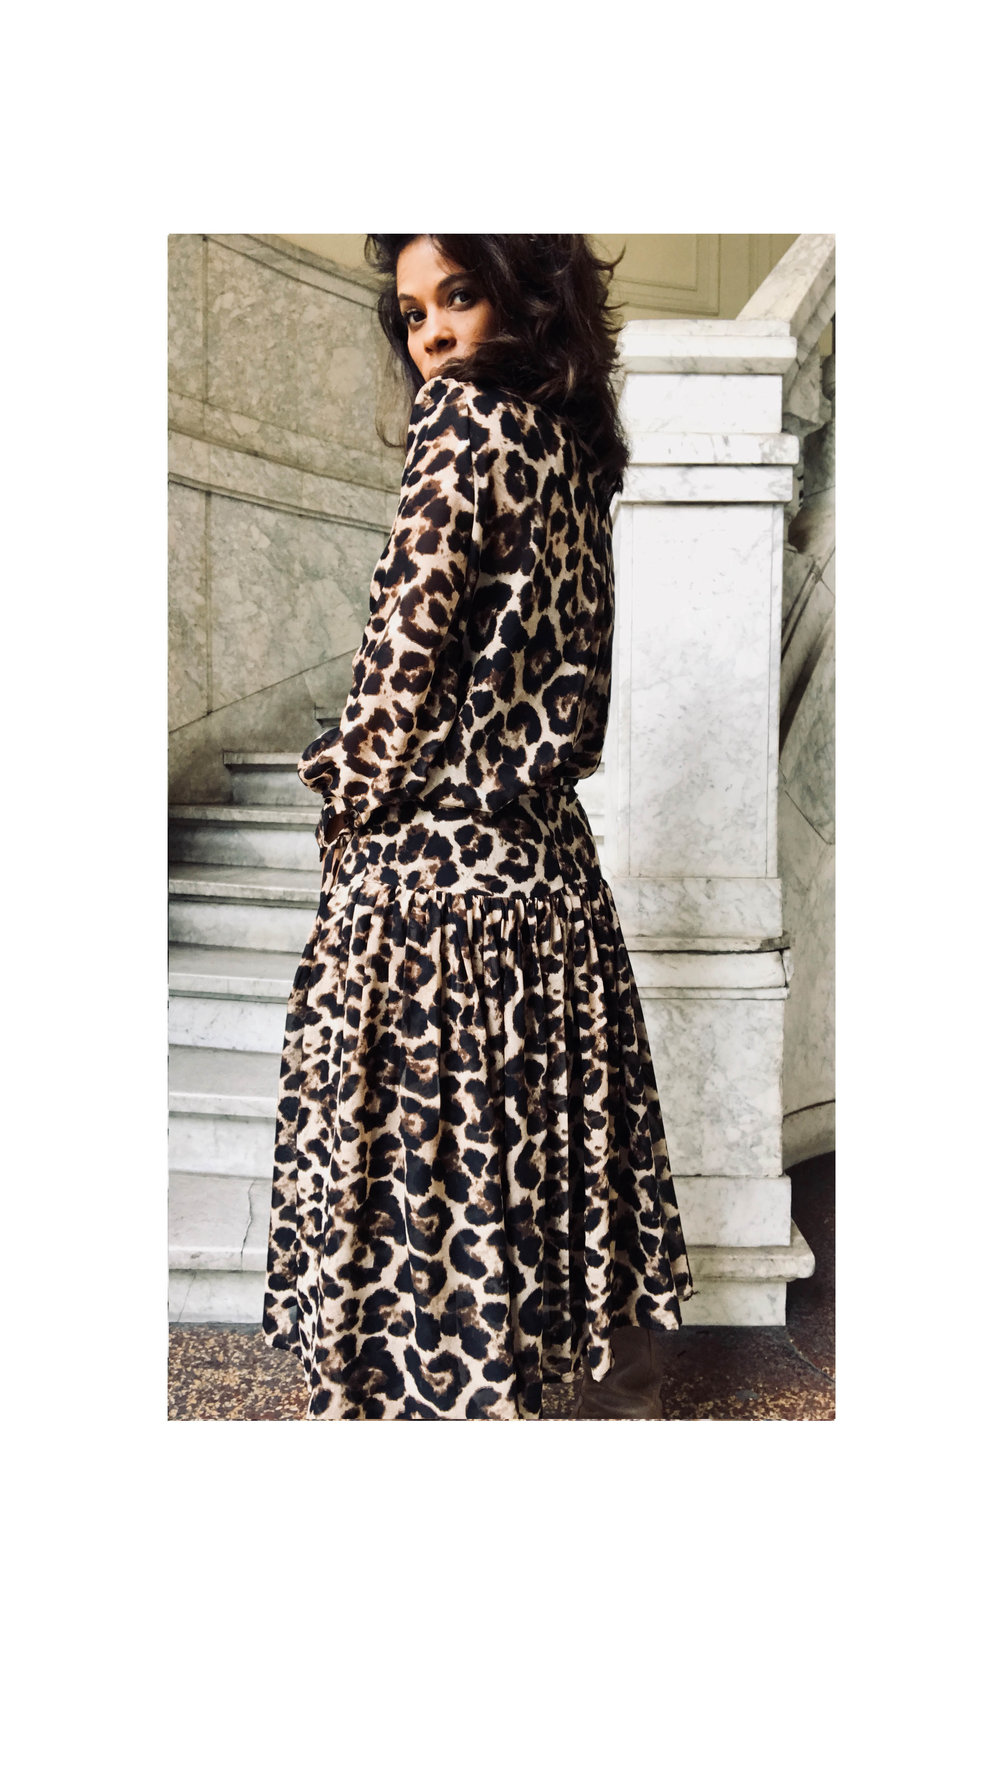 Leopard wijde Rok - Shop the Look